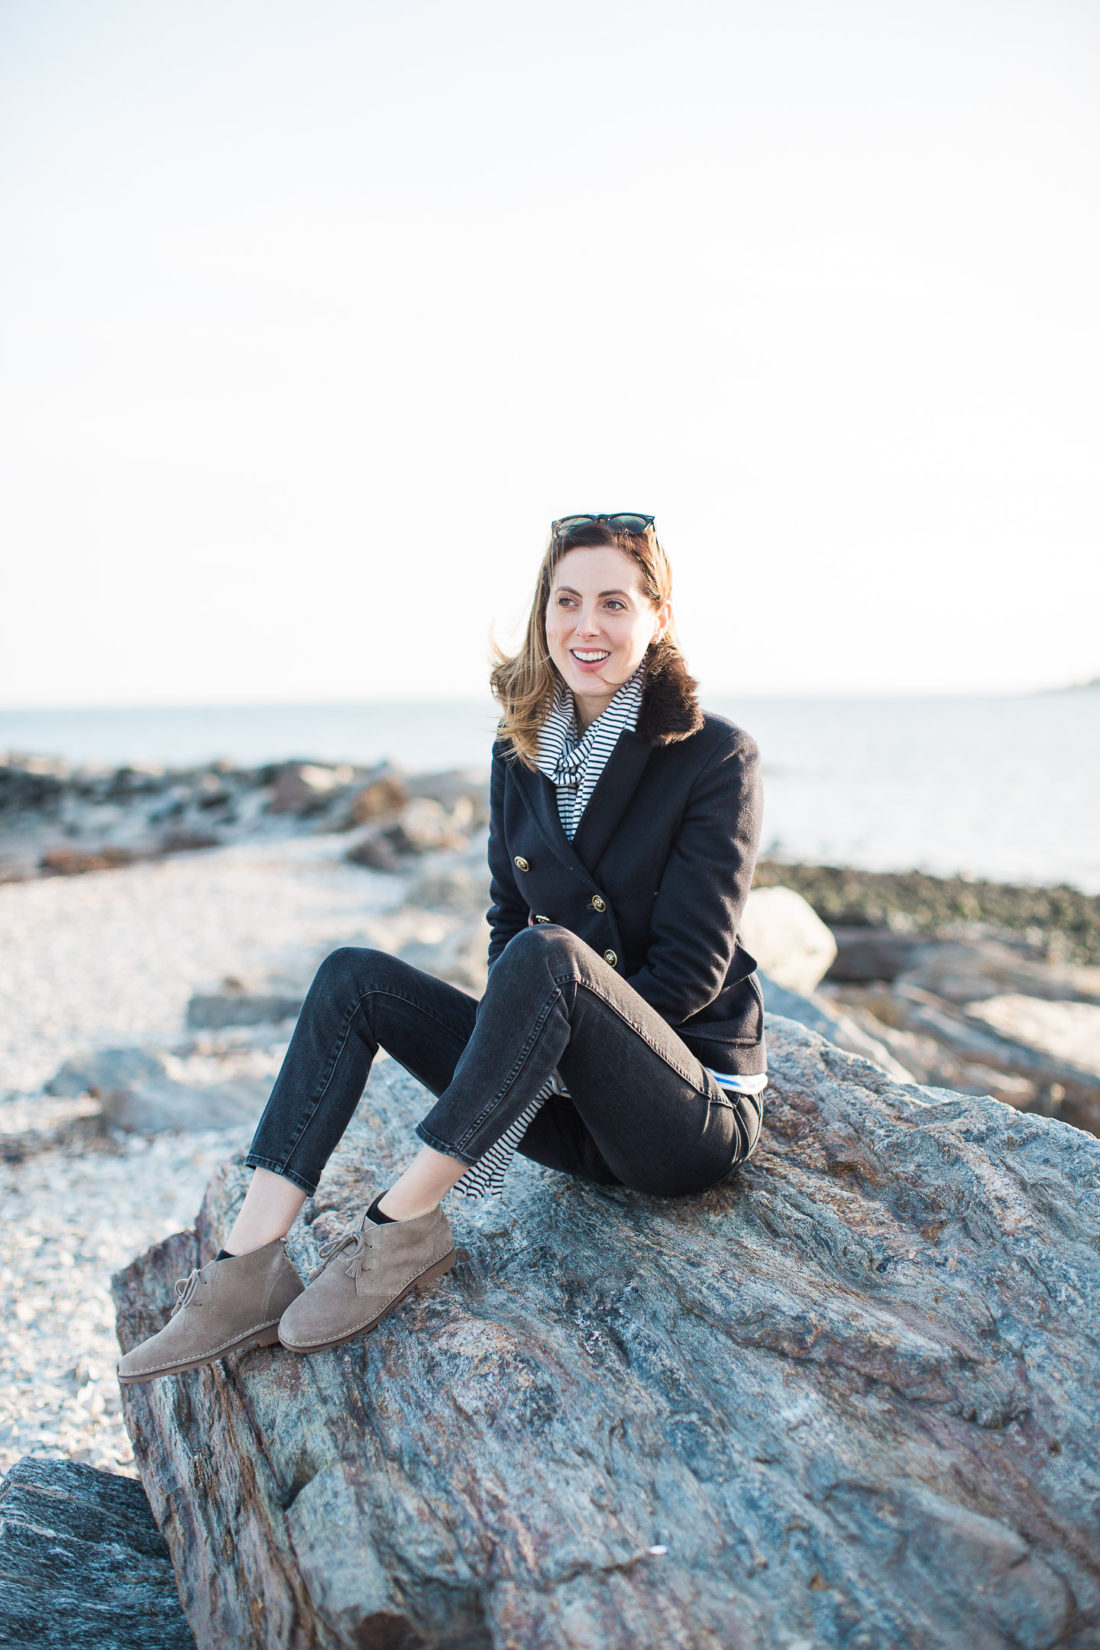 Eva Amurri Martino sits on the rocks at Compo Beach wearing a navy blue peacoat and striped scarf